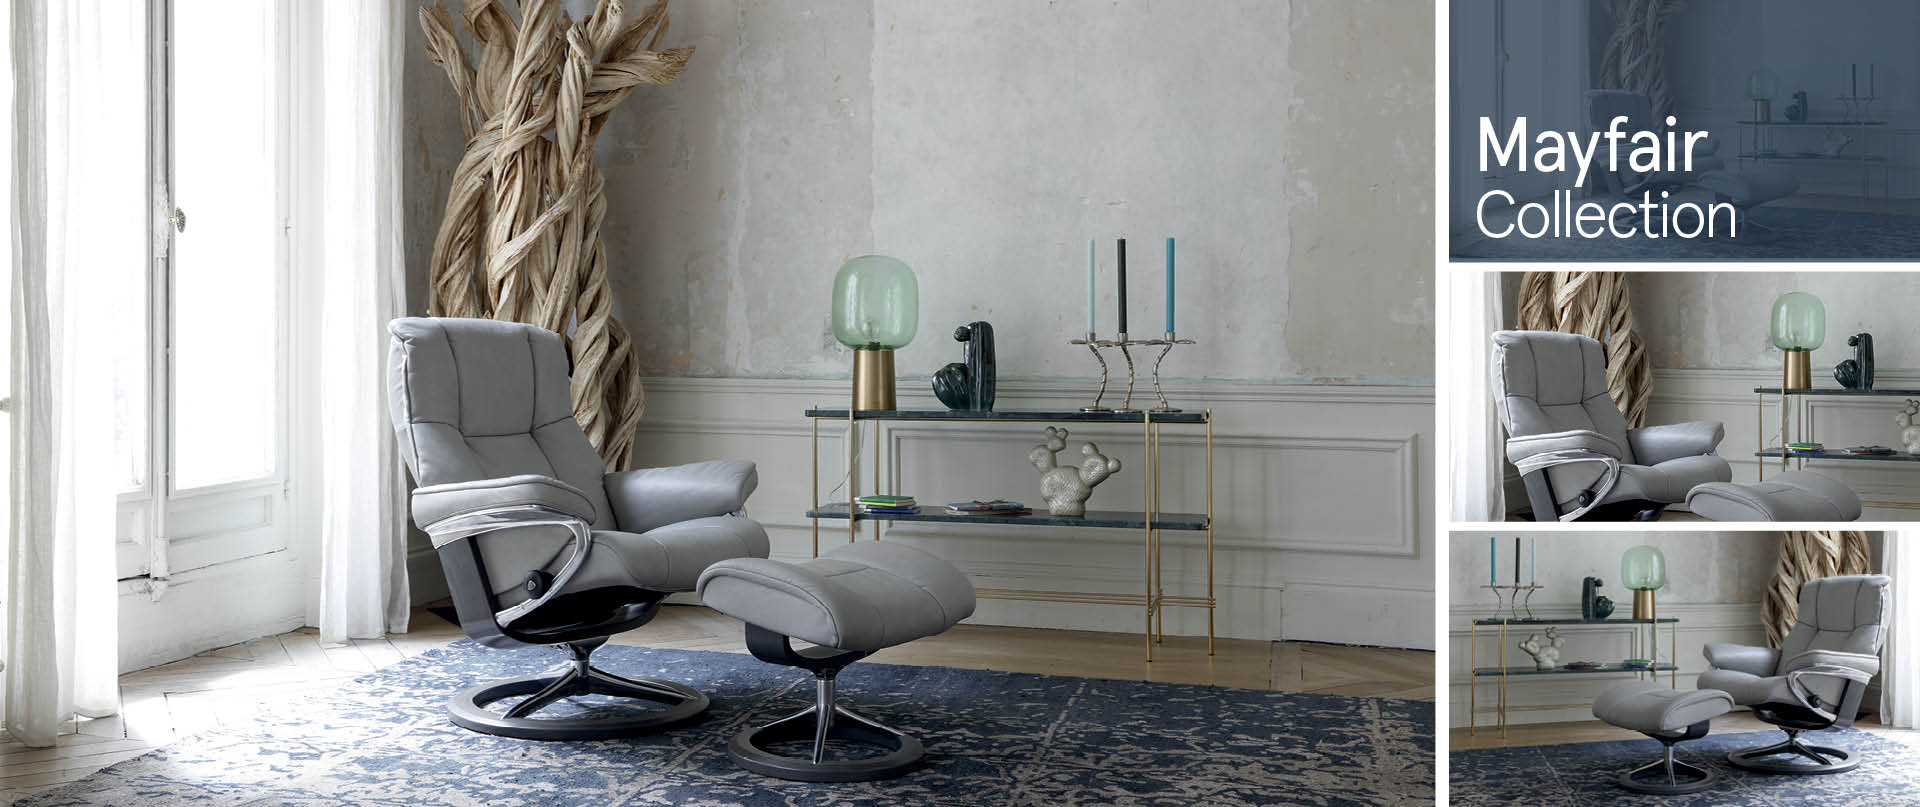 Mayfair Chairs and Footstools Ranges